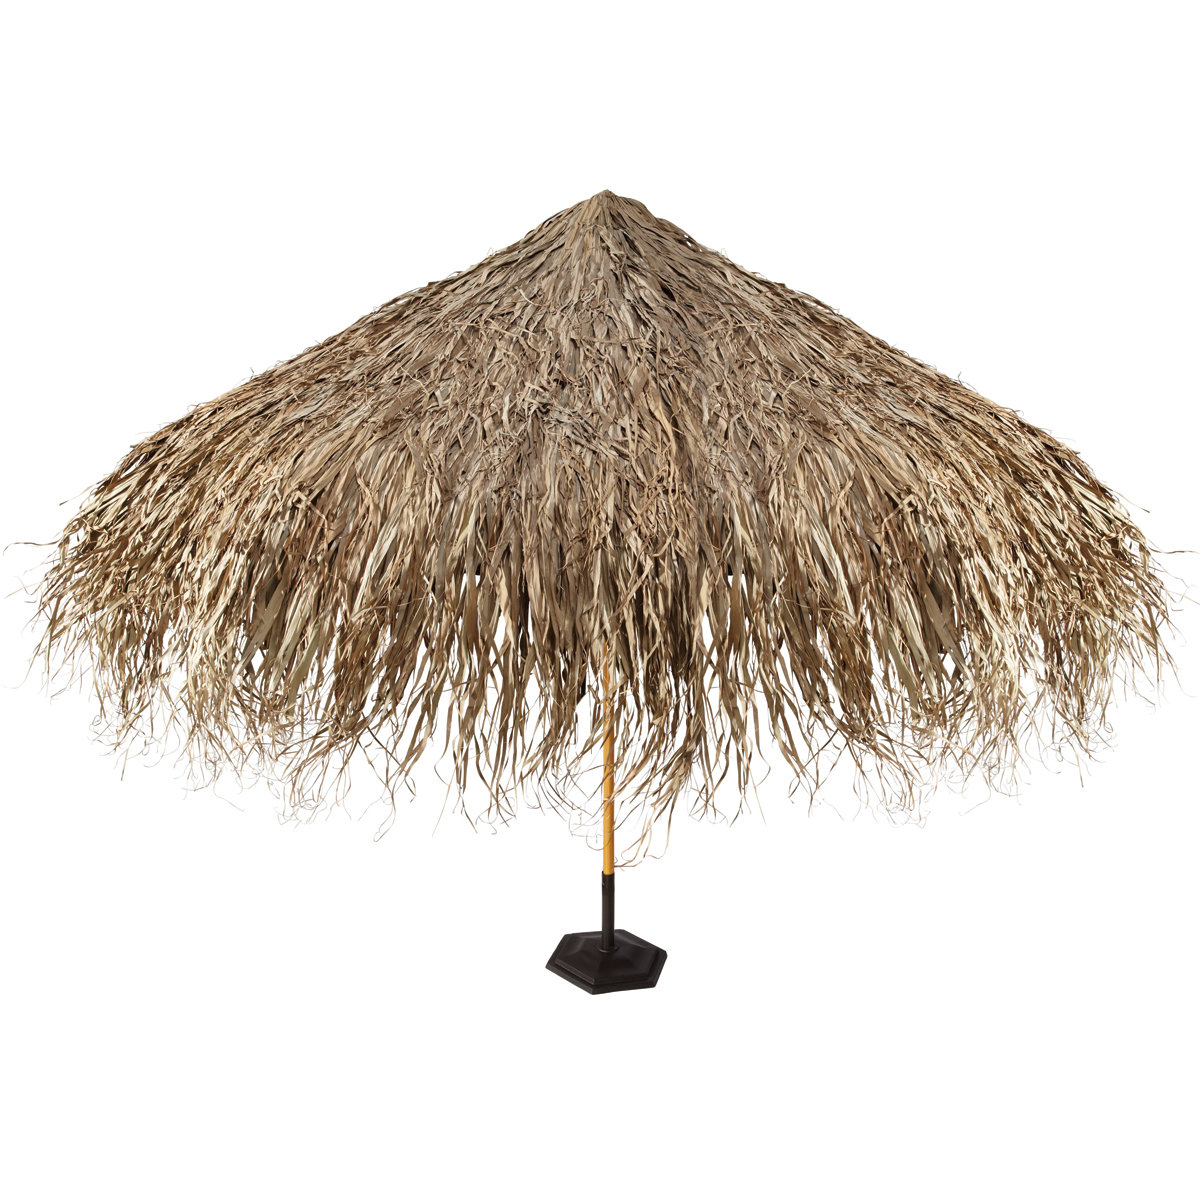 Tropical Patio Umbrella Replacement Cover Within Well Known Tropical Patio Umbrellas (View 8 of 20)